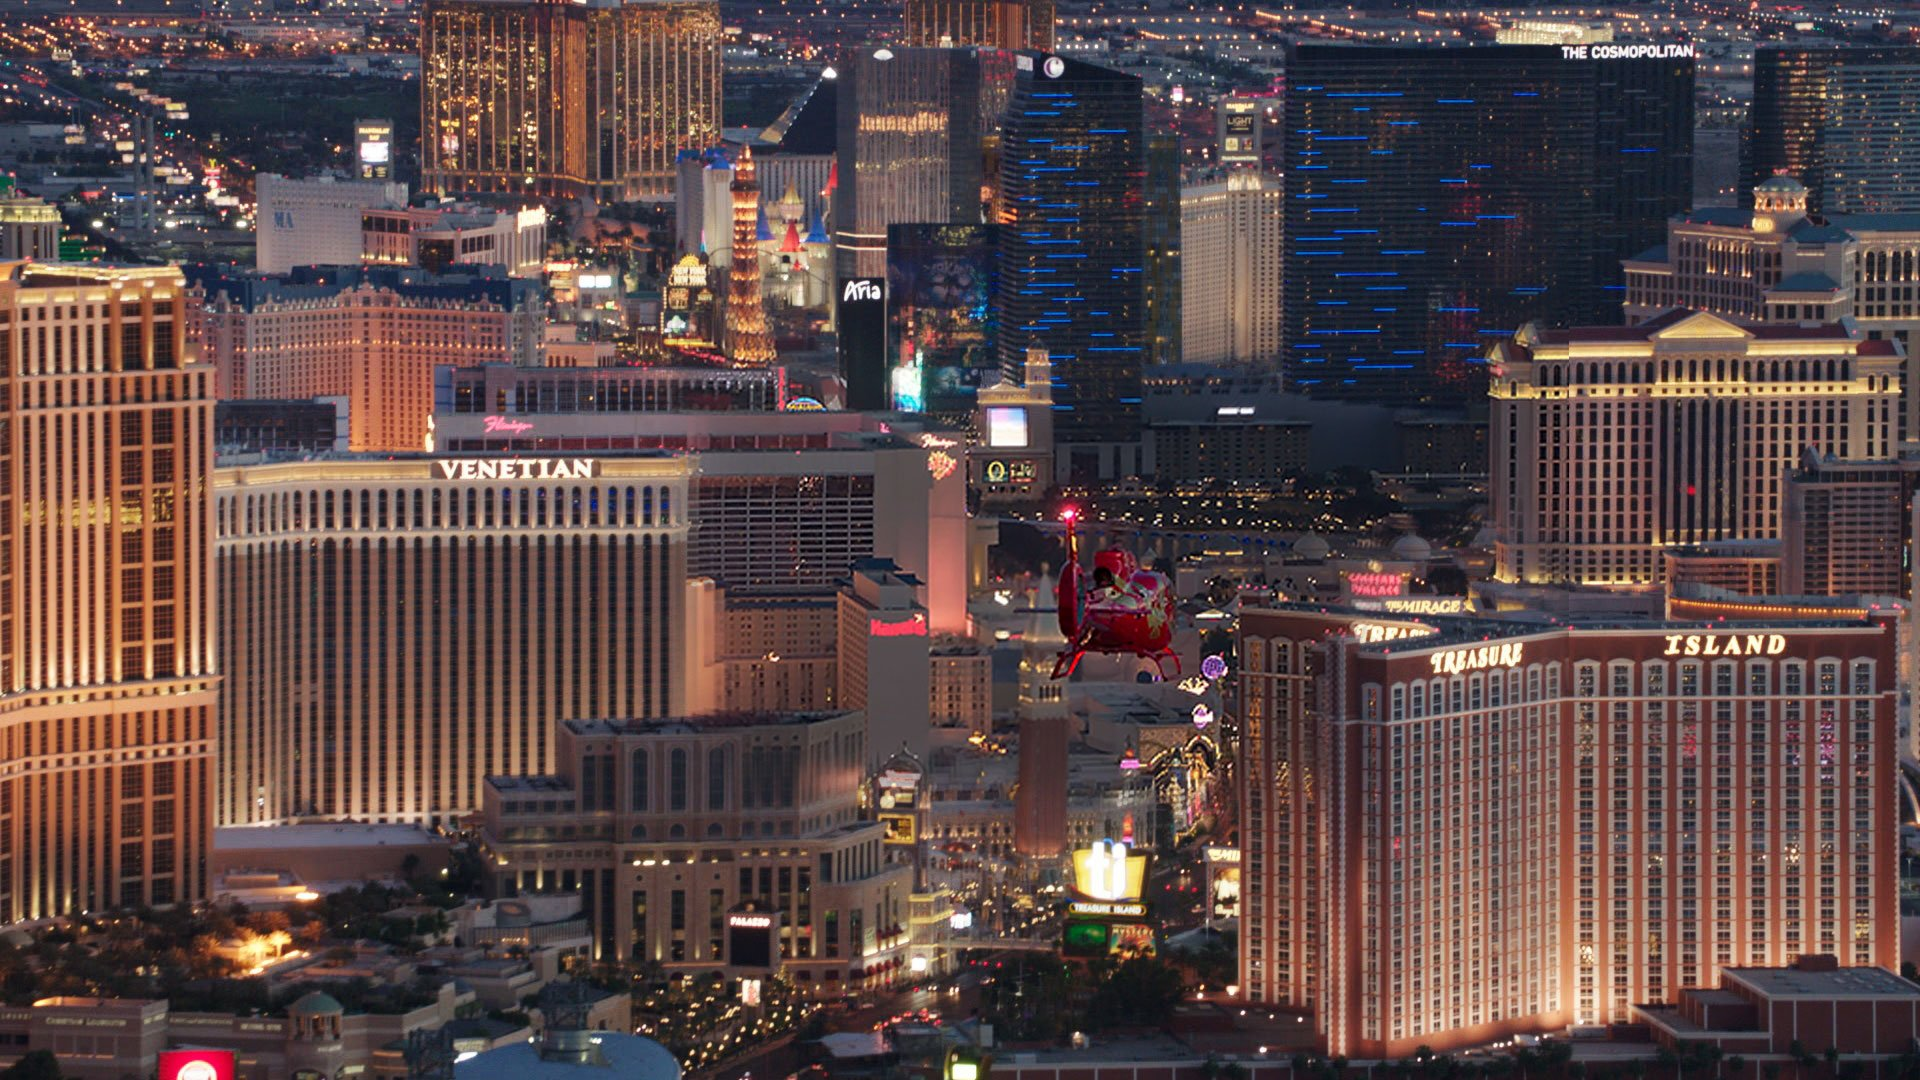 EC-130 helicopter flying over the Las Vegas Strip